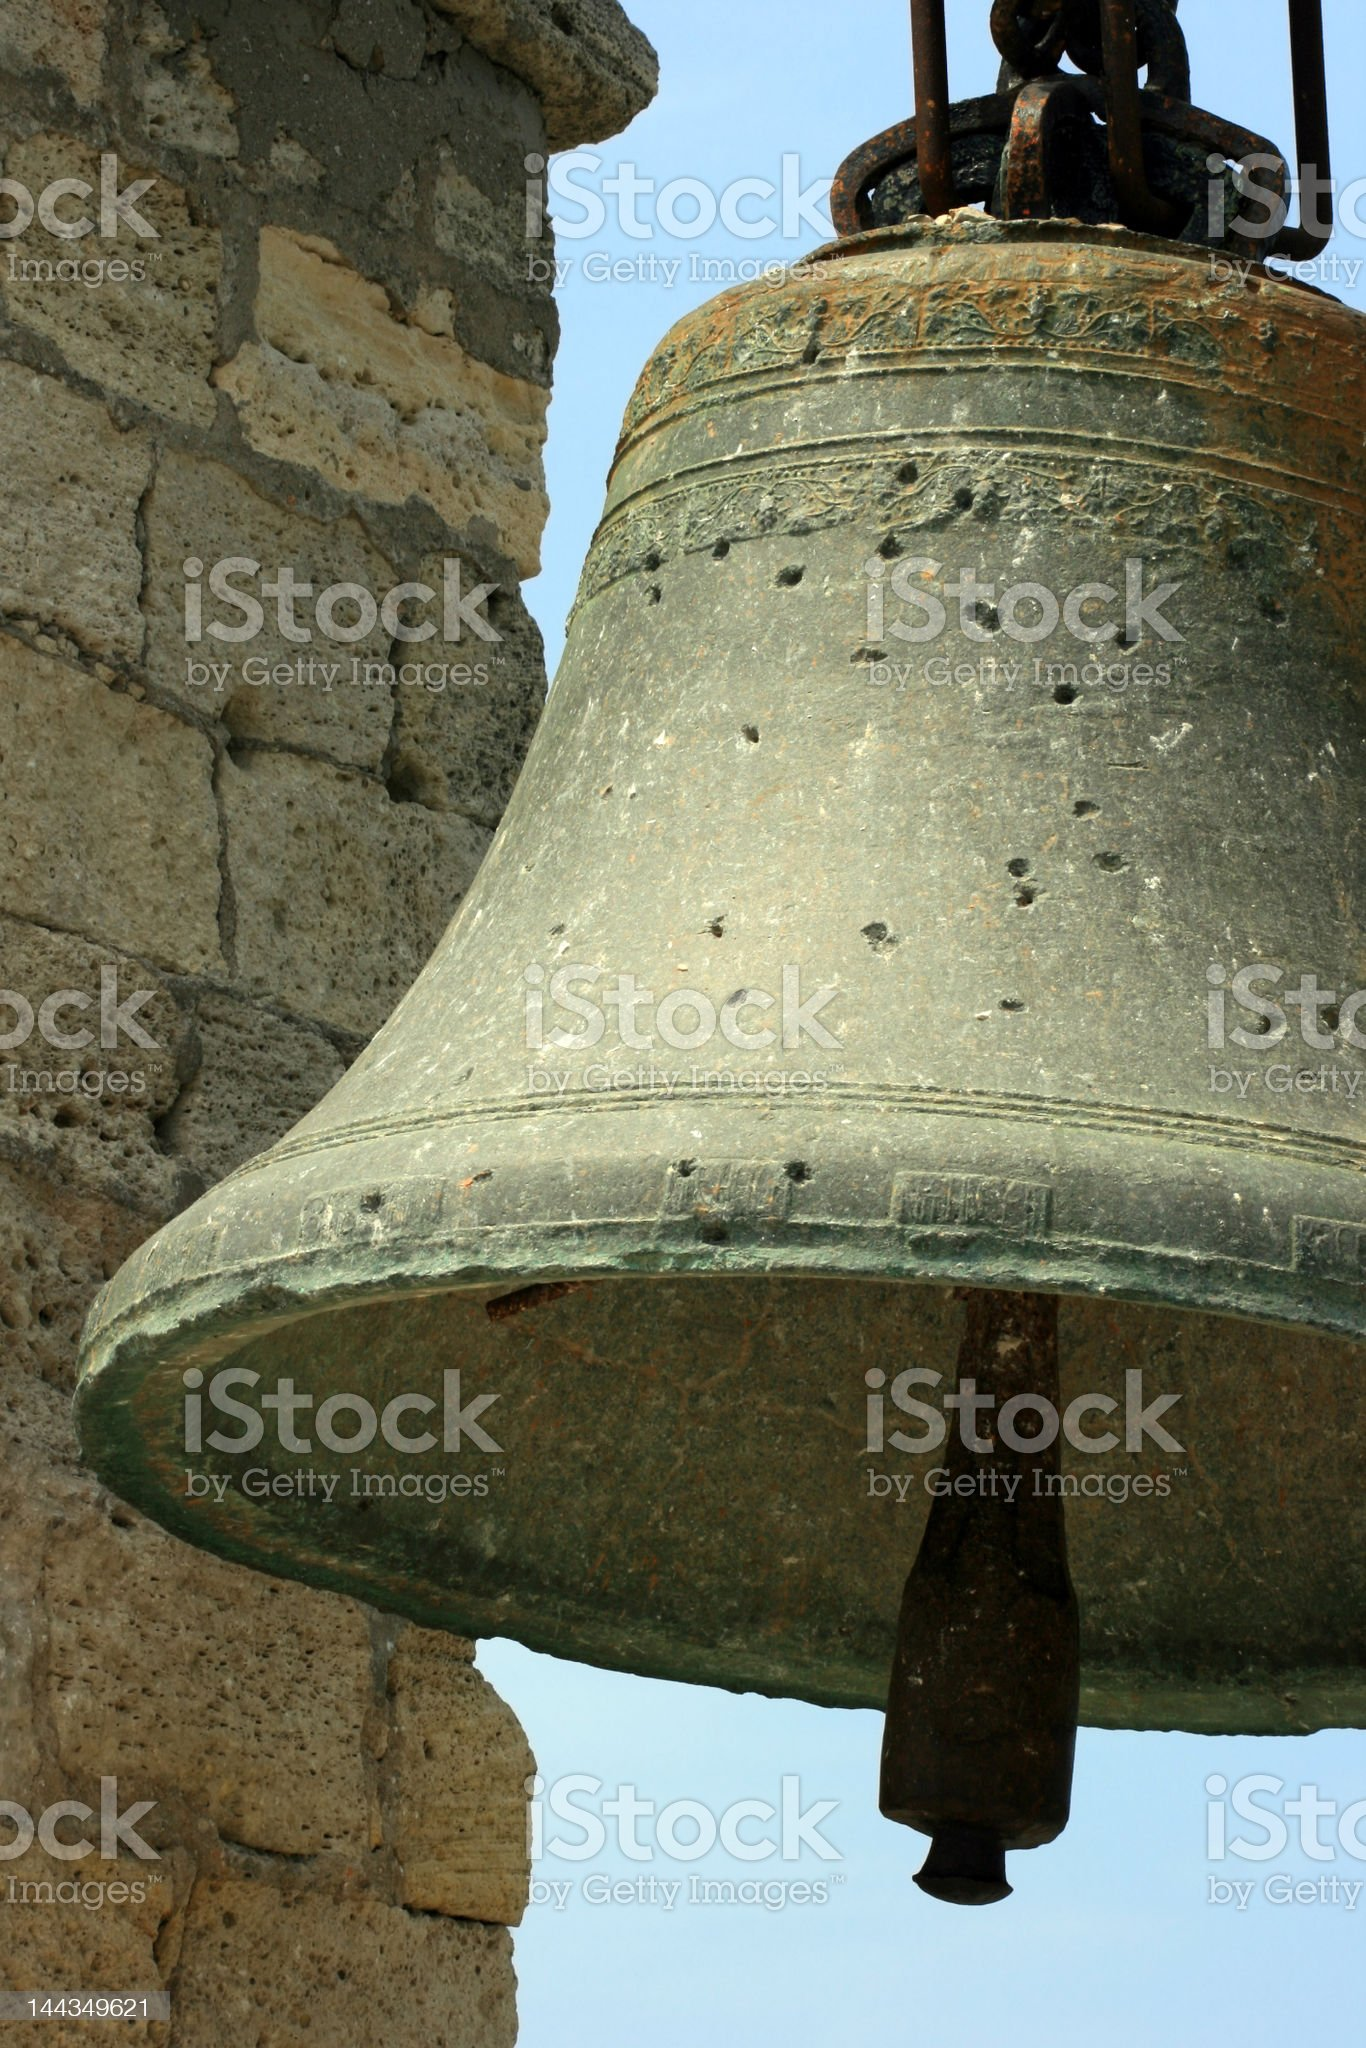 Big old bell in Crimea, Ukraine royalty-free stock photo